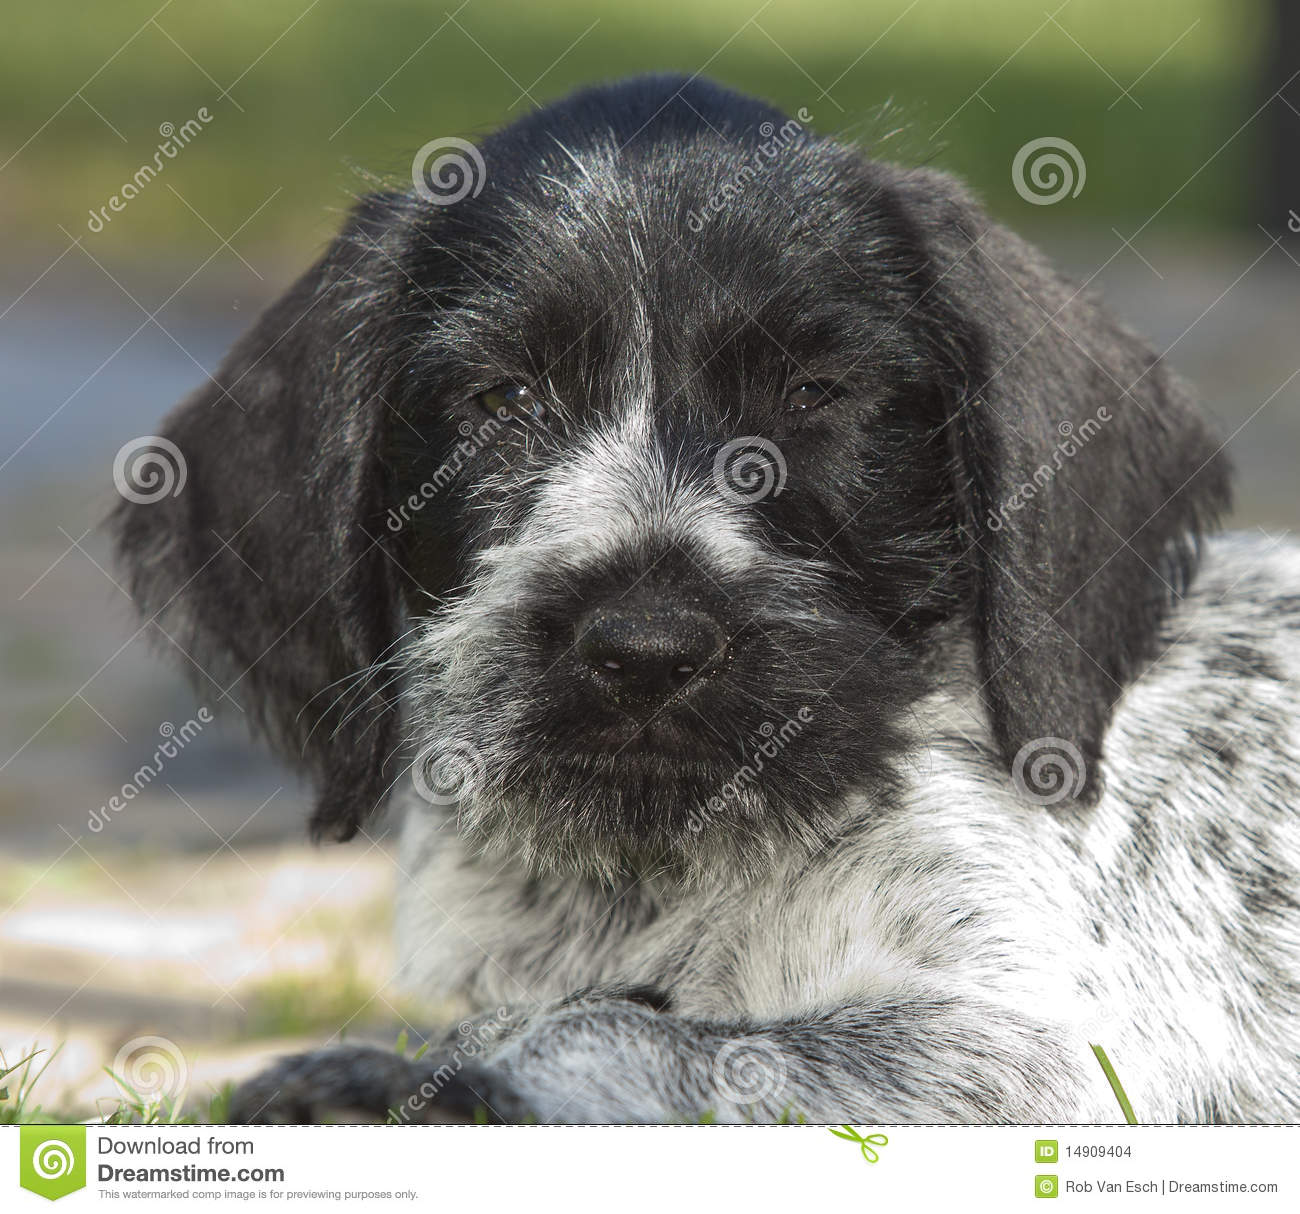 Puppy Dog German Shorthaired Pointer Stock Photo - Image of sweet ...